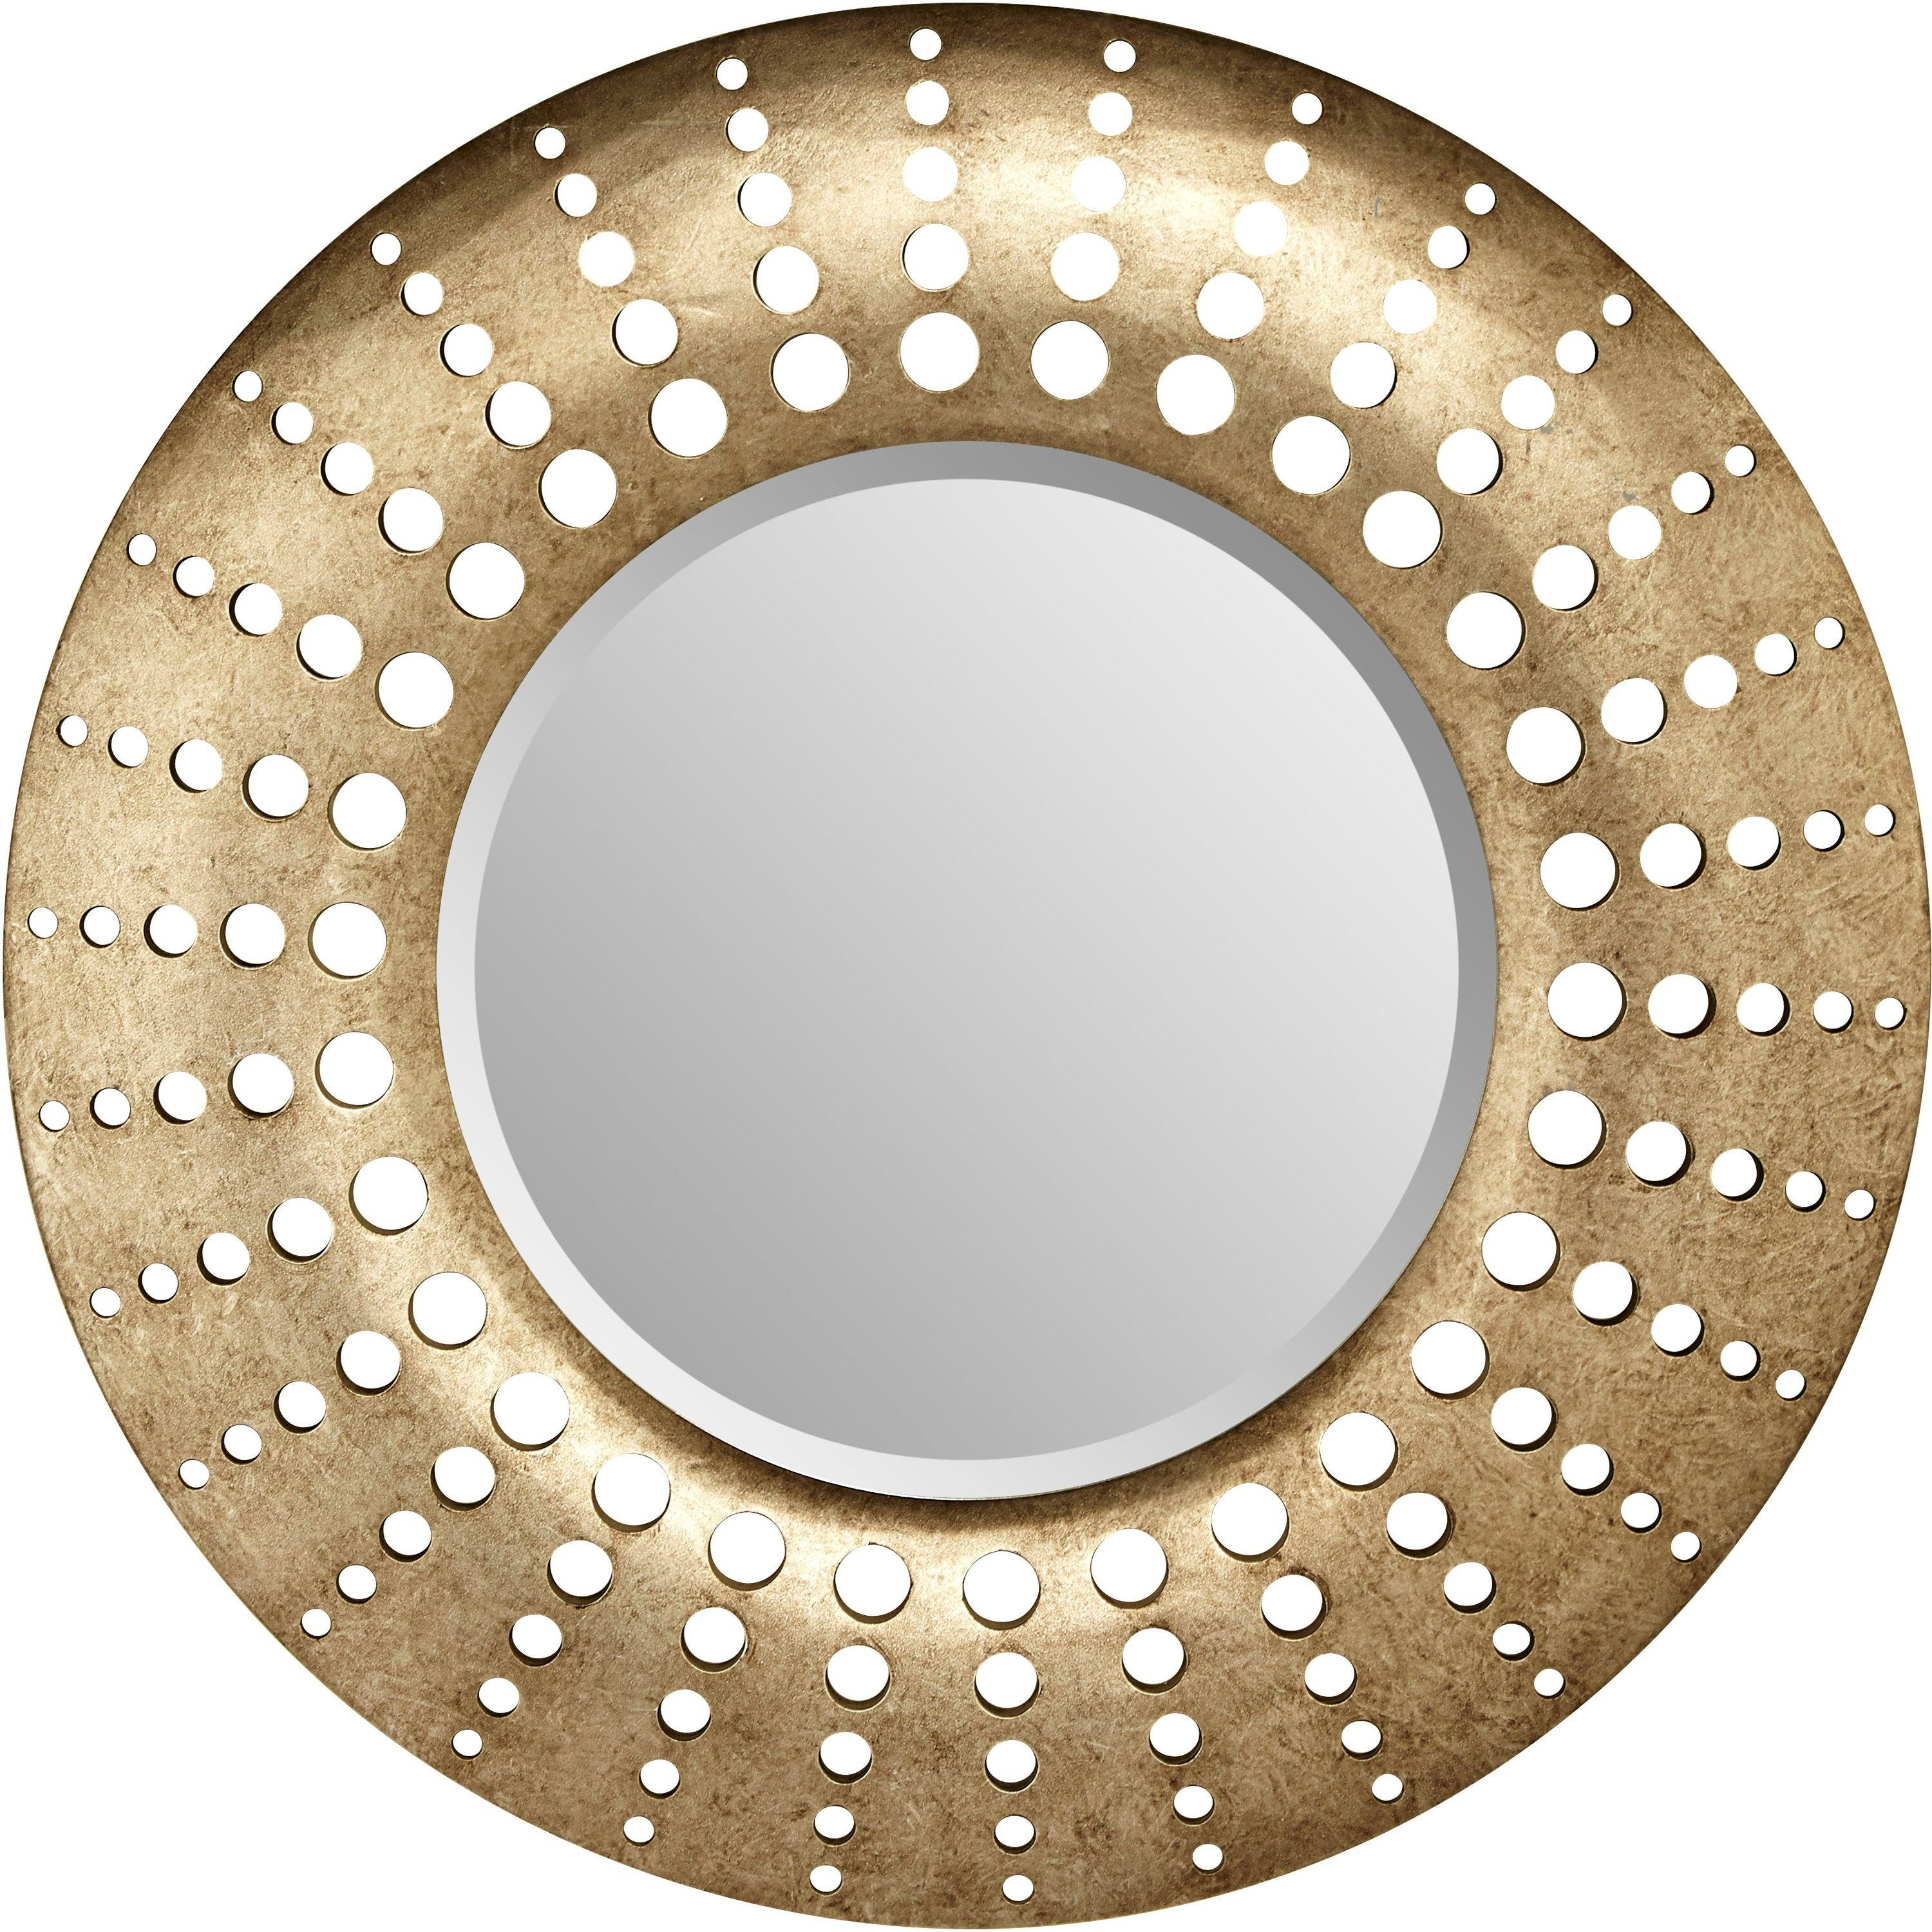 Arthouse Holed Mirror - Gunmetal.